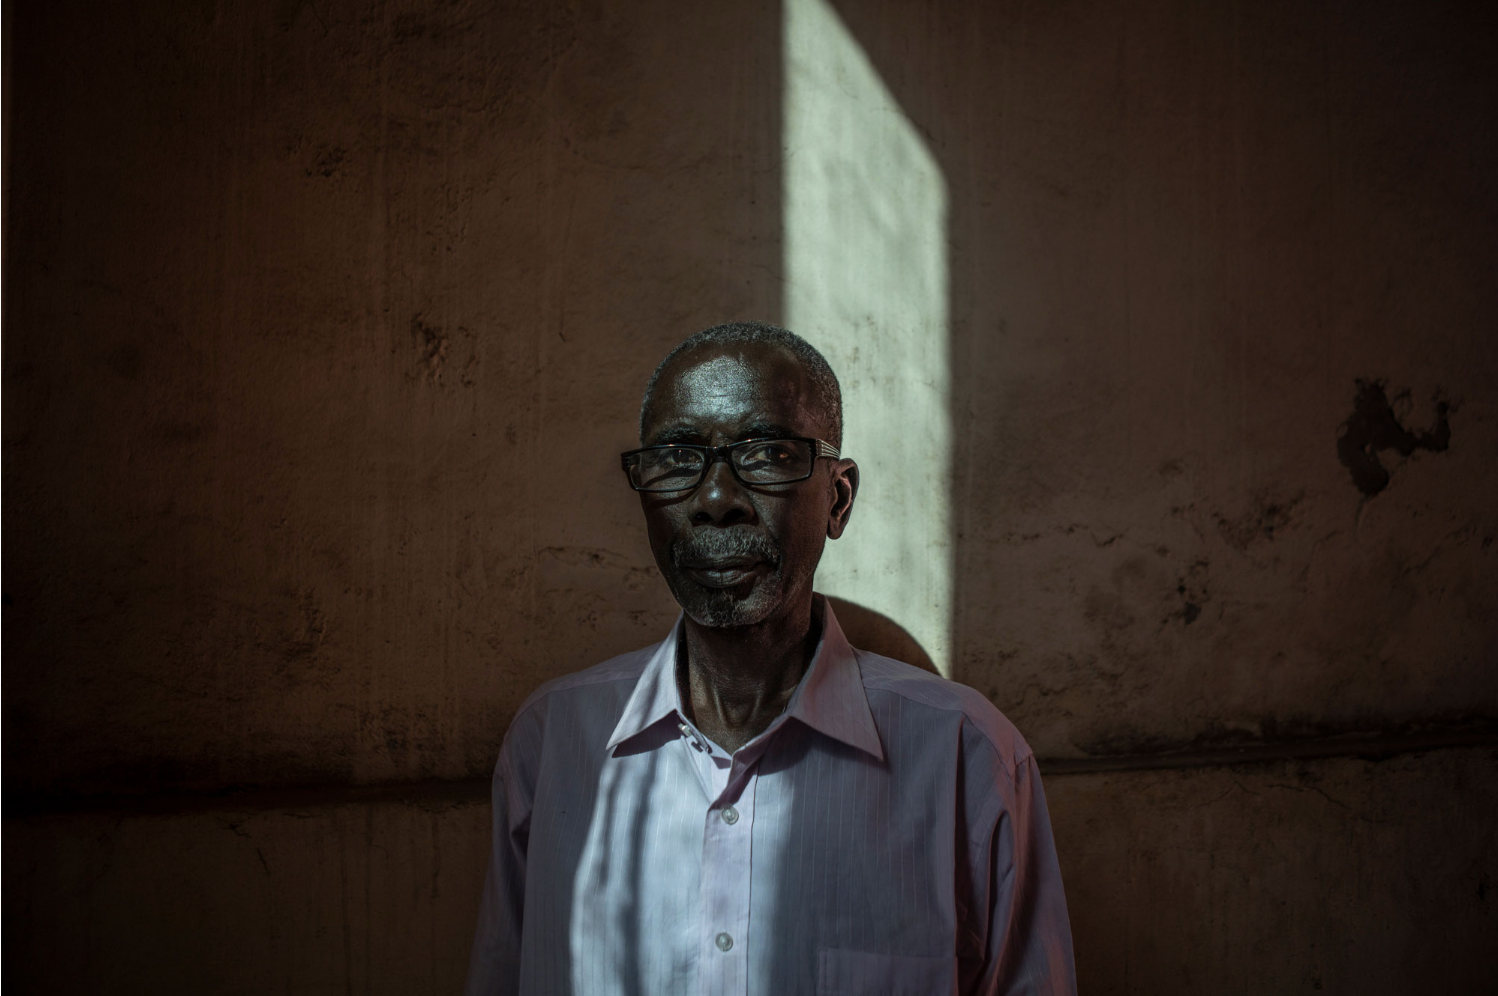 Lamin Ceesay - took part in Yahya Jammeh AIDS/HIV herbal 'cure' trials, the Gambia - portrait ©Jason Florio